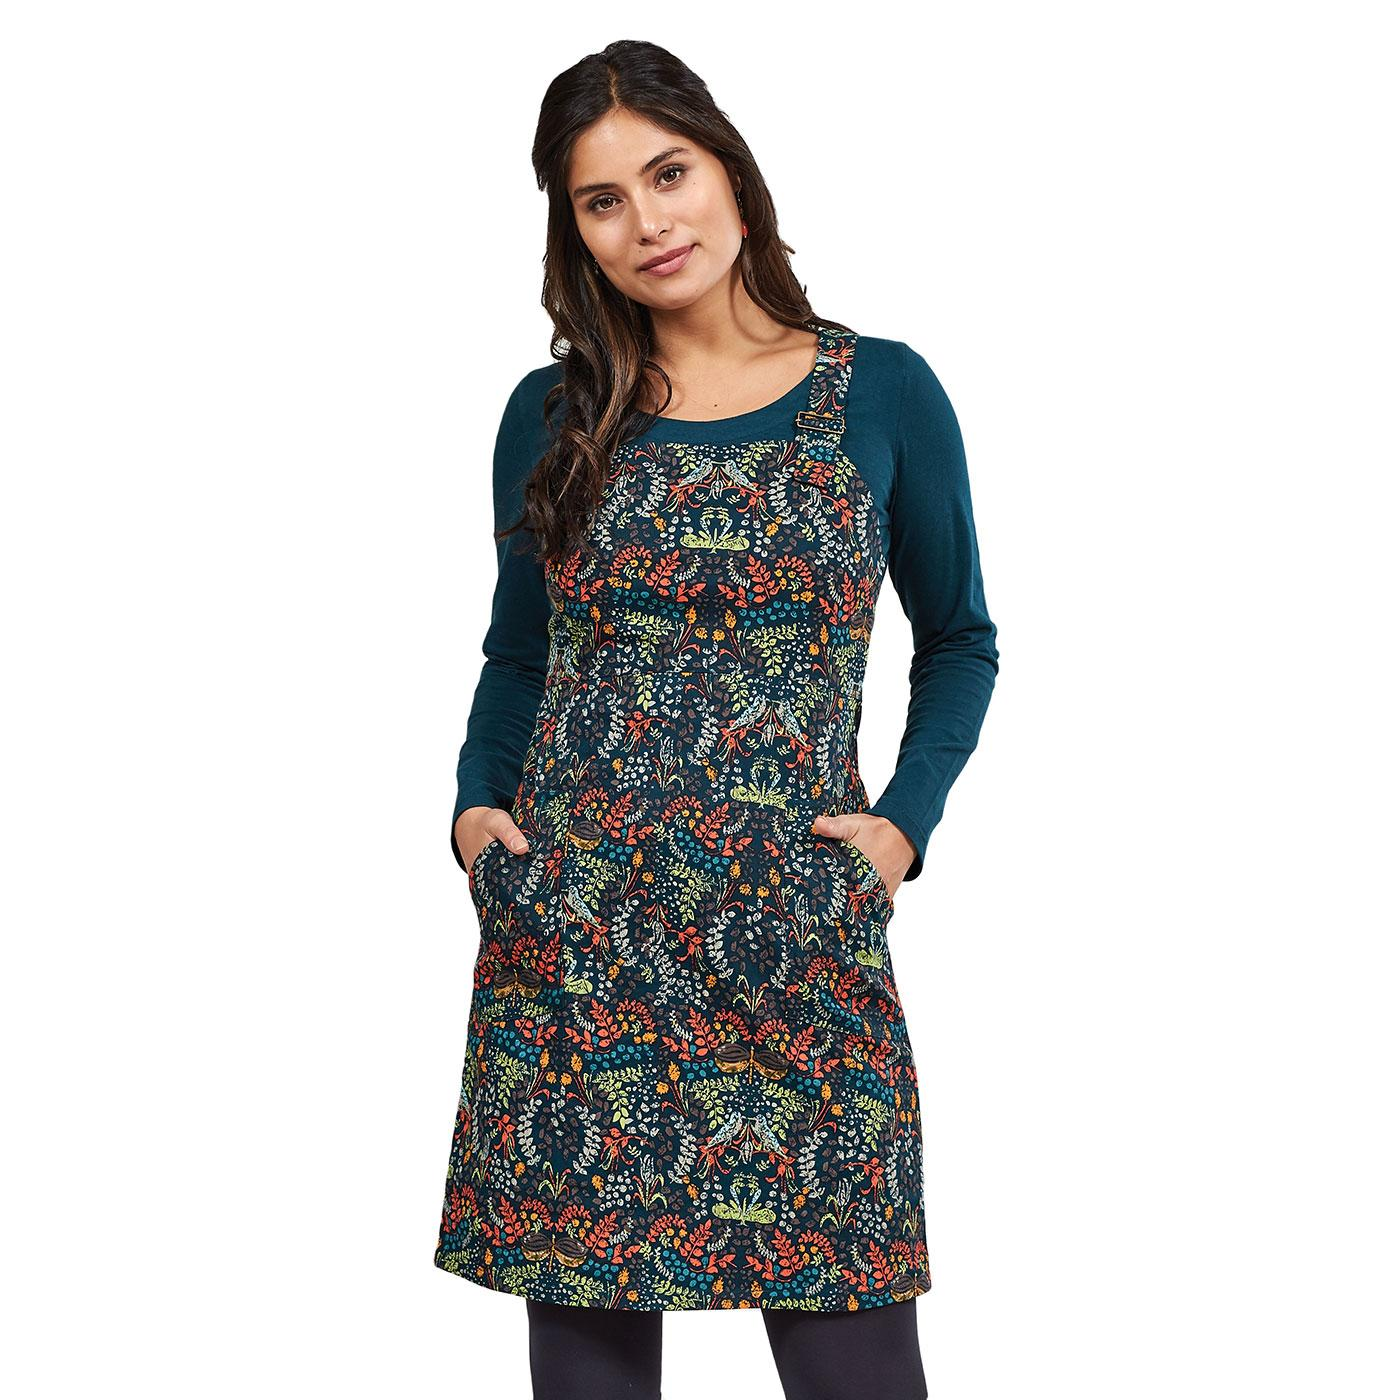 NOMADS Retro 70s Songbird Print Dungaree Dress M